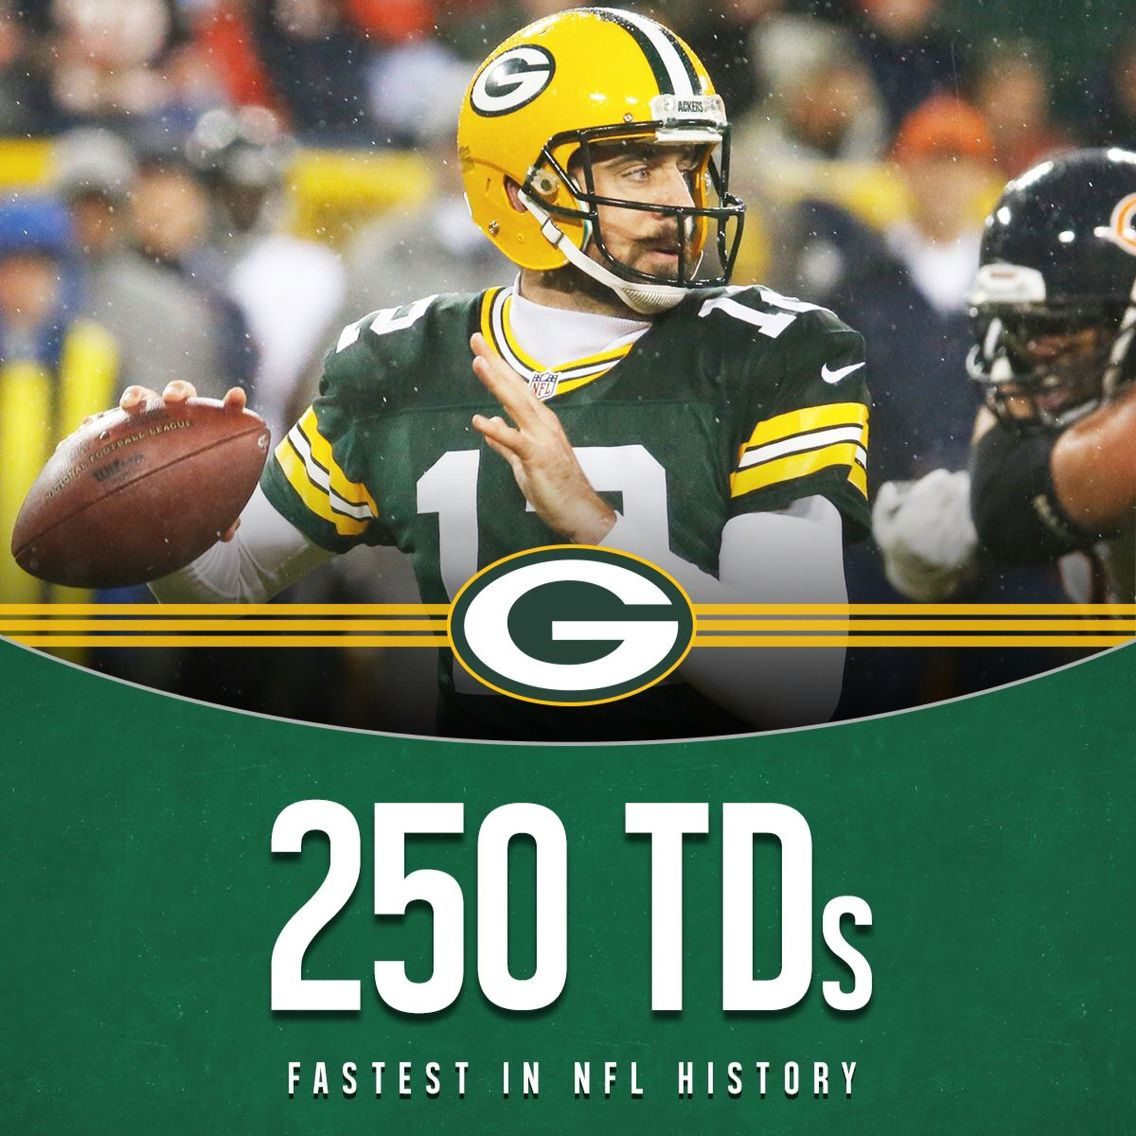 Aaron Rodgers Green Bay Packers Fans Nfl Green Bay Packers Football